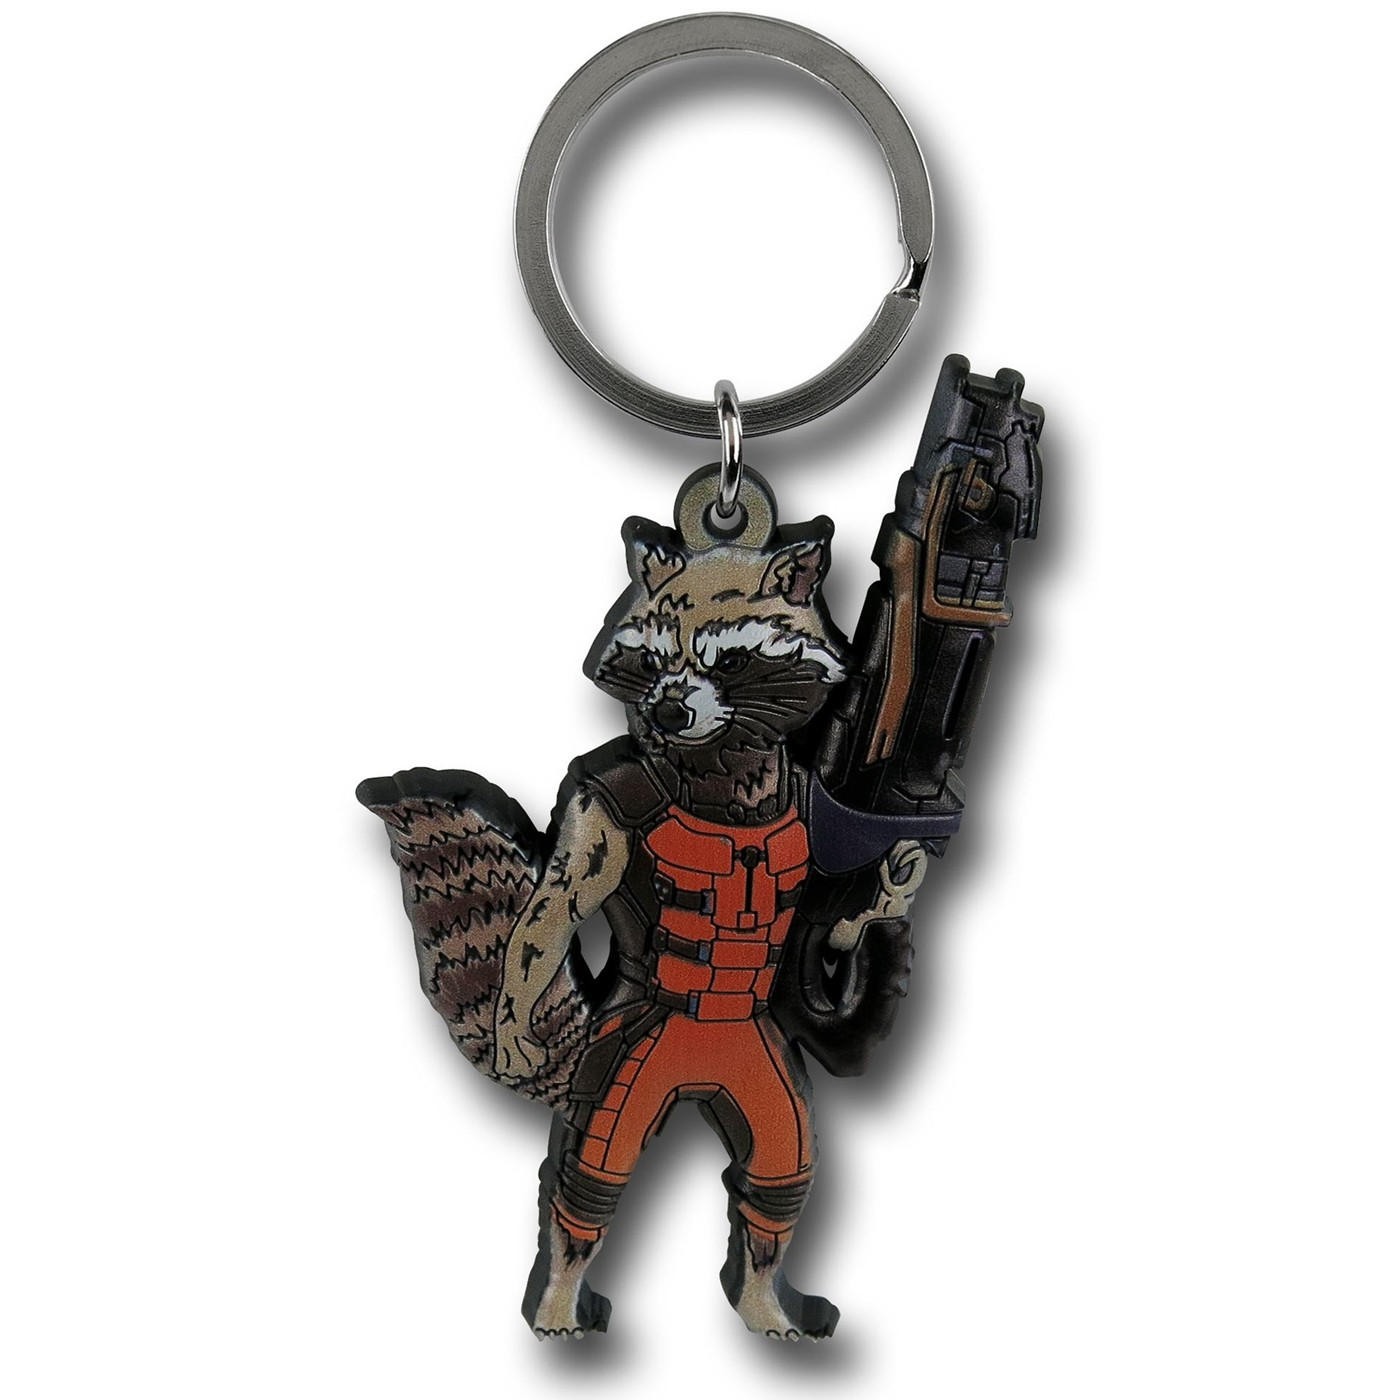 GOTG Rocket Raccoon Soft Keychain